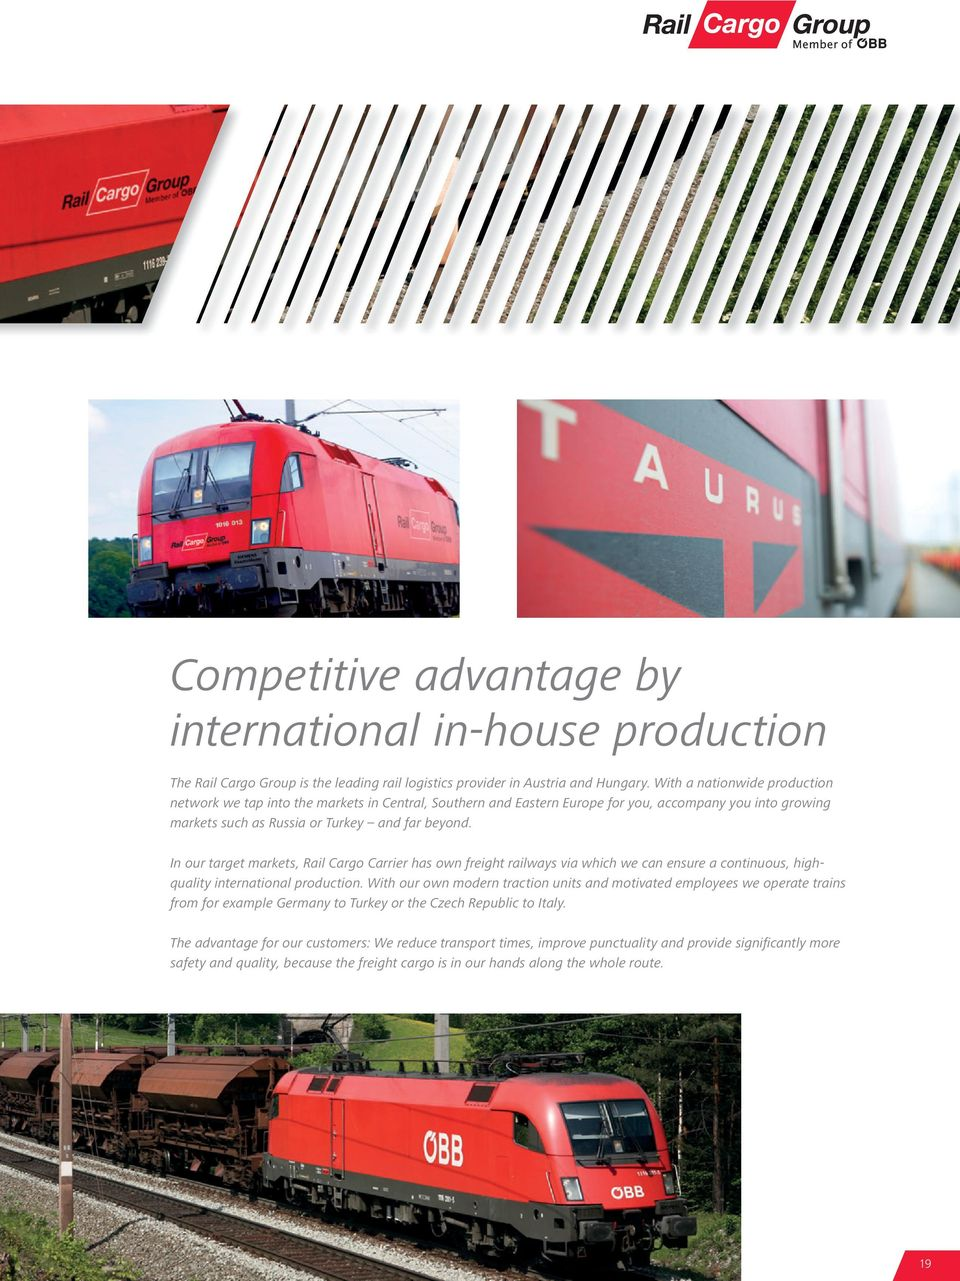 In our target markets, Rail Cargo Carrier has own freight railways via which we can ensure a continuous, highquality international production.